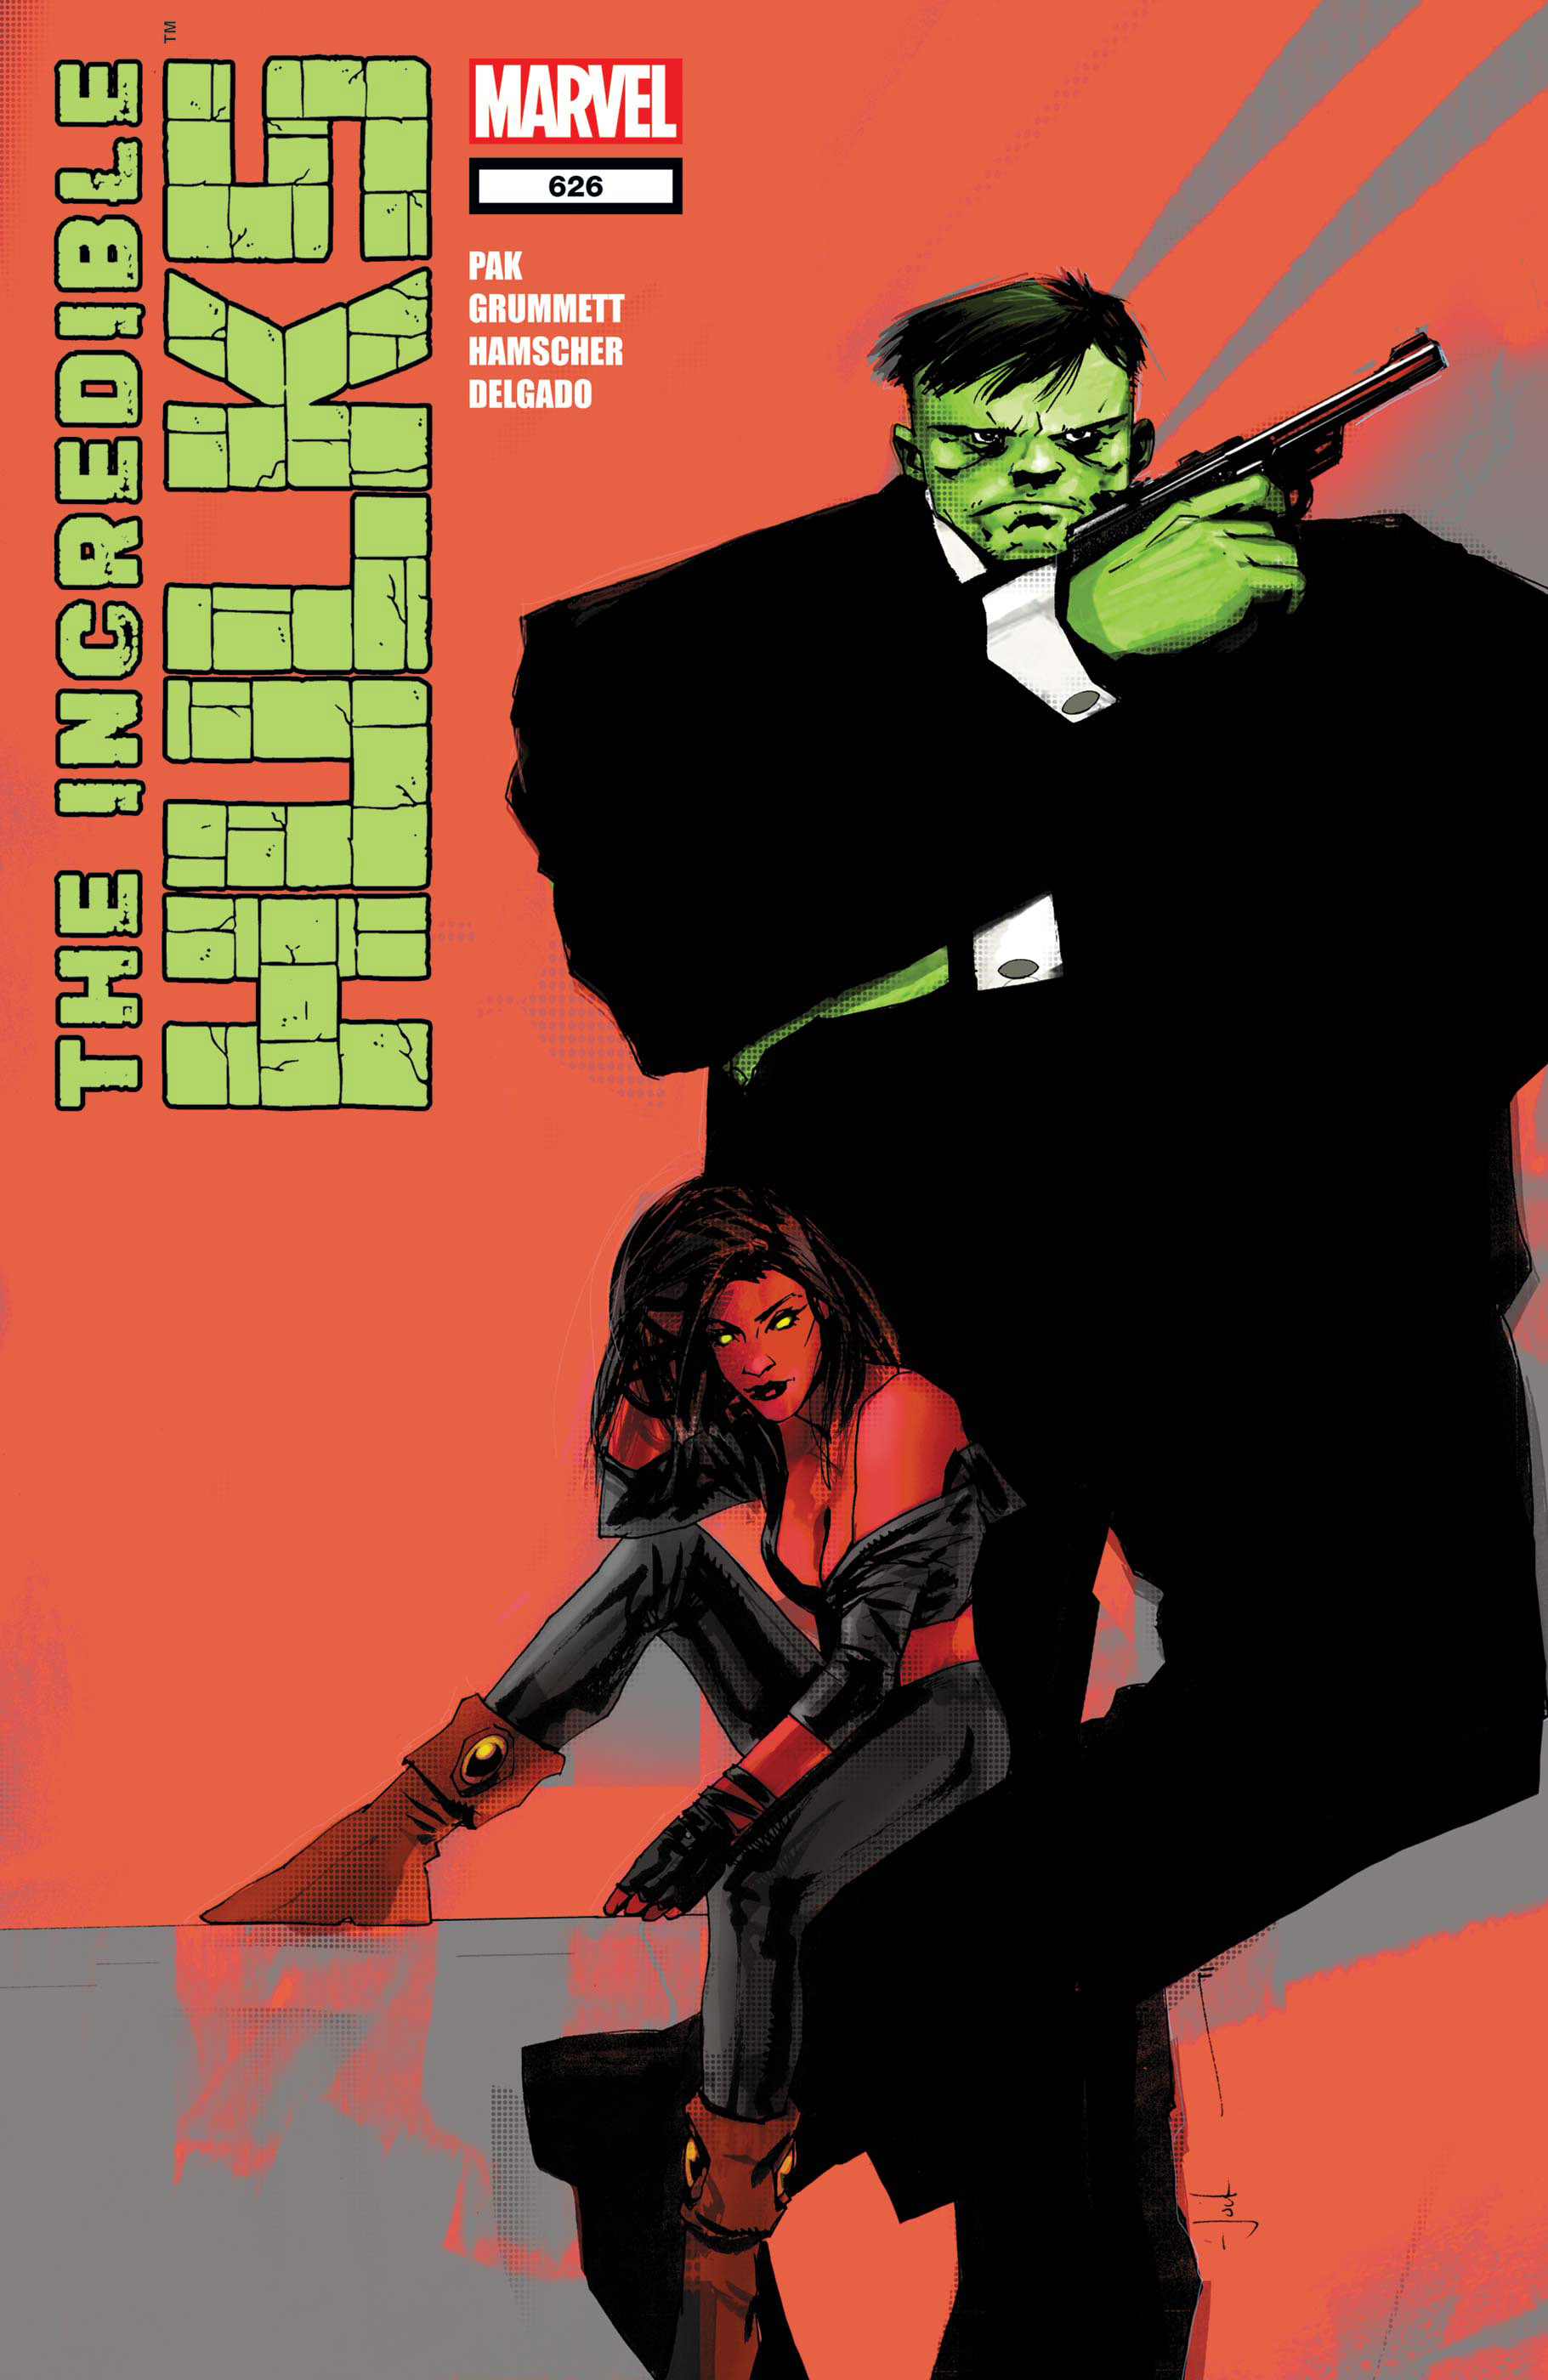 Incredible Hulks (2010) #626